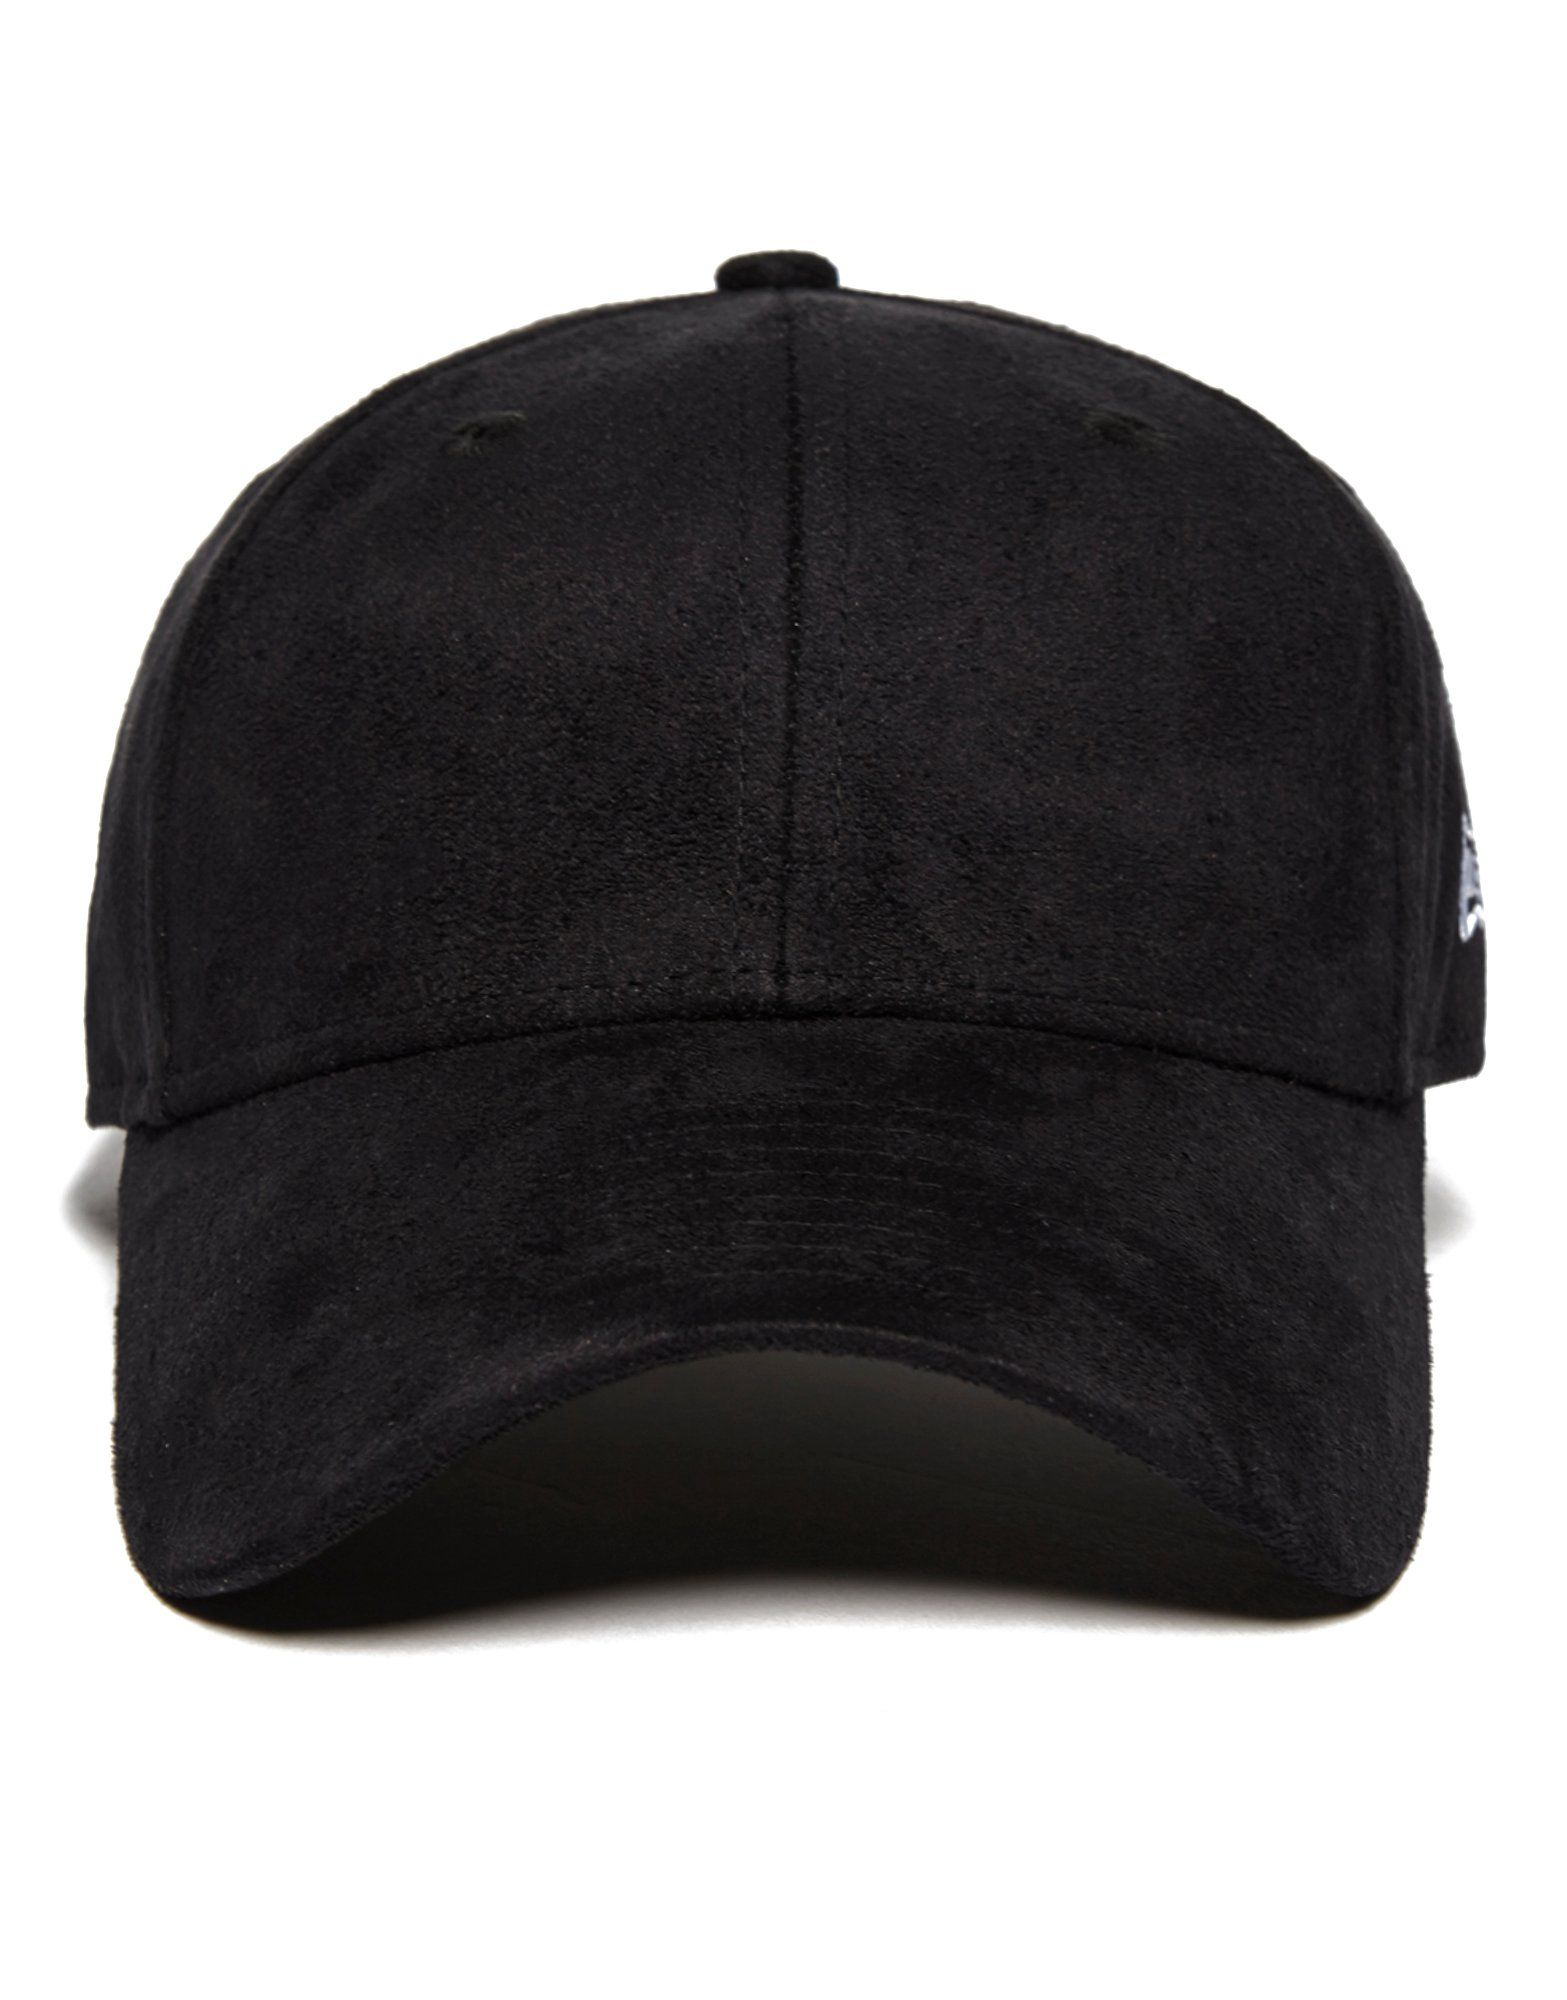 New Era 9FORTY Suede Cap